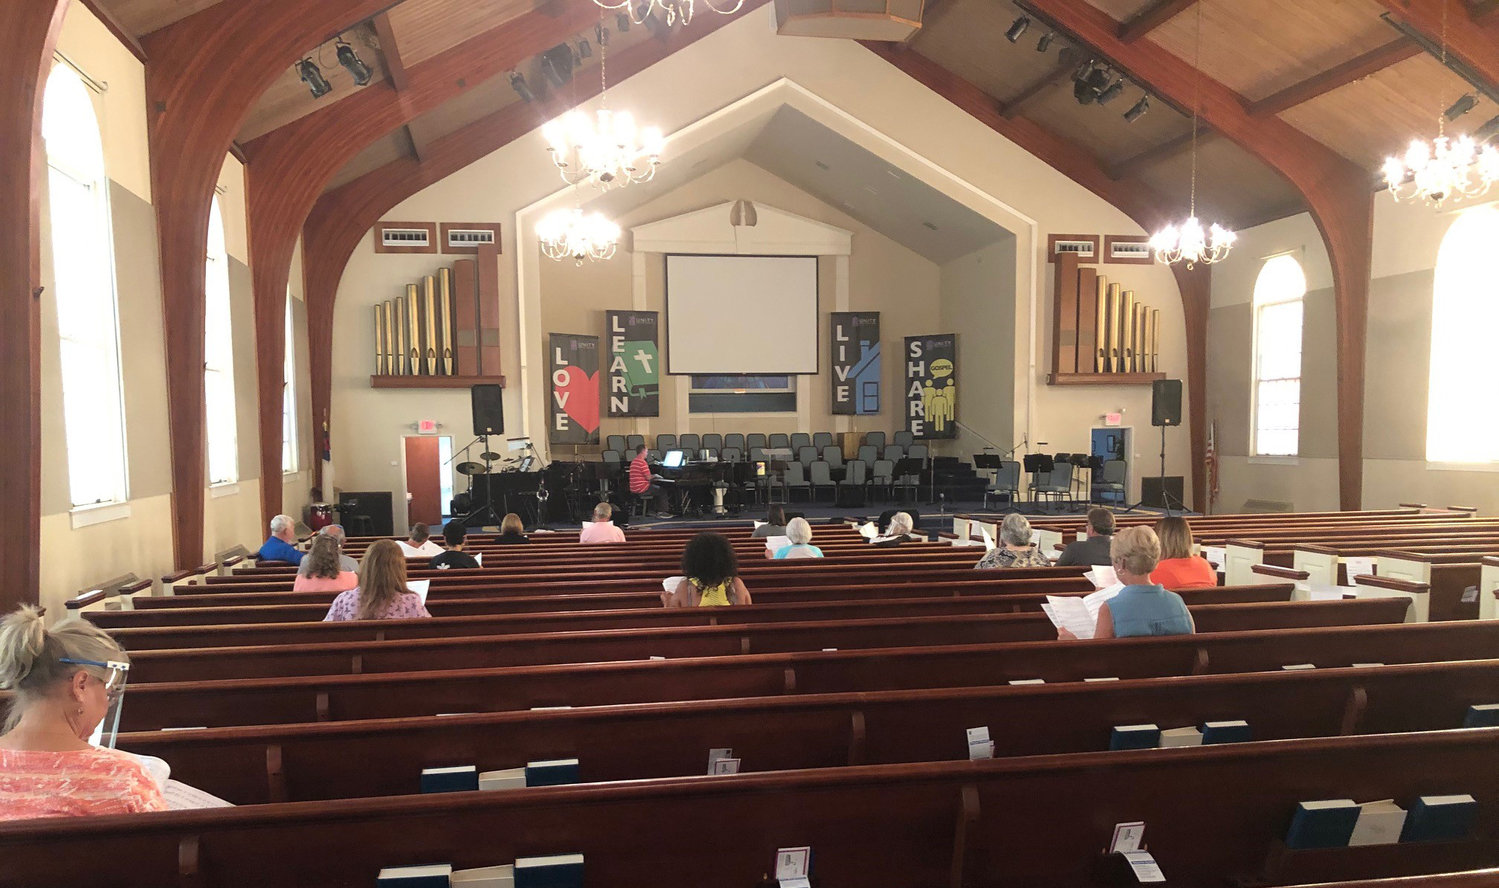 Social distancing was observed during recent choir rehearsals at Unity Baptist Church in Ashland.